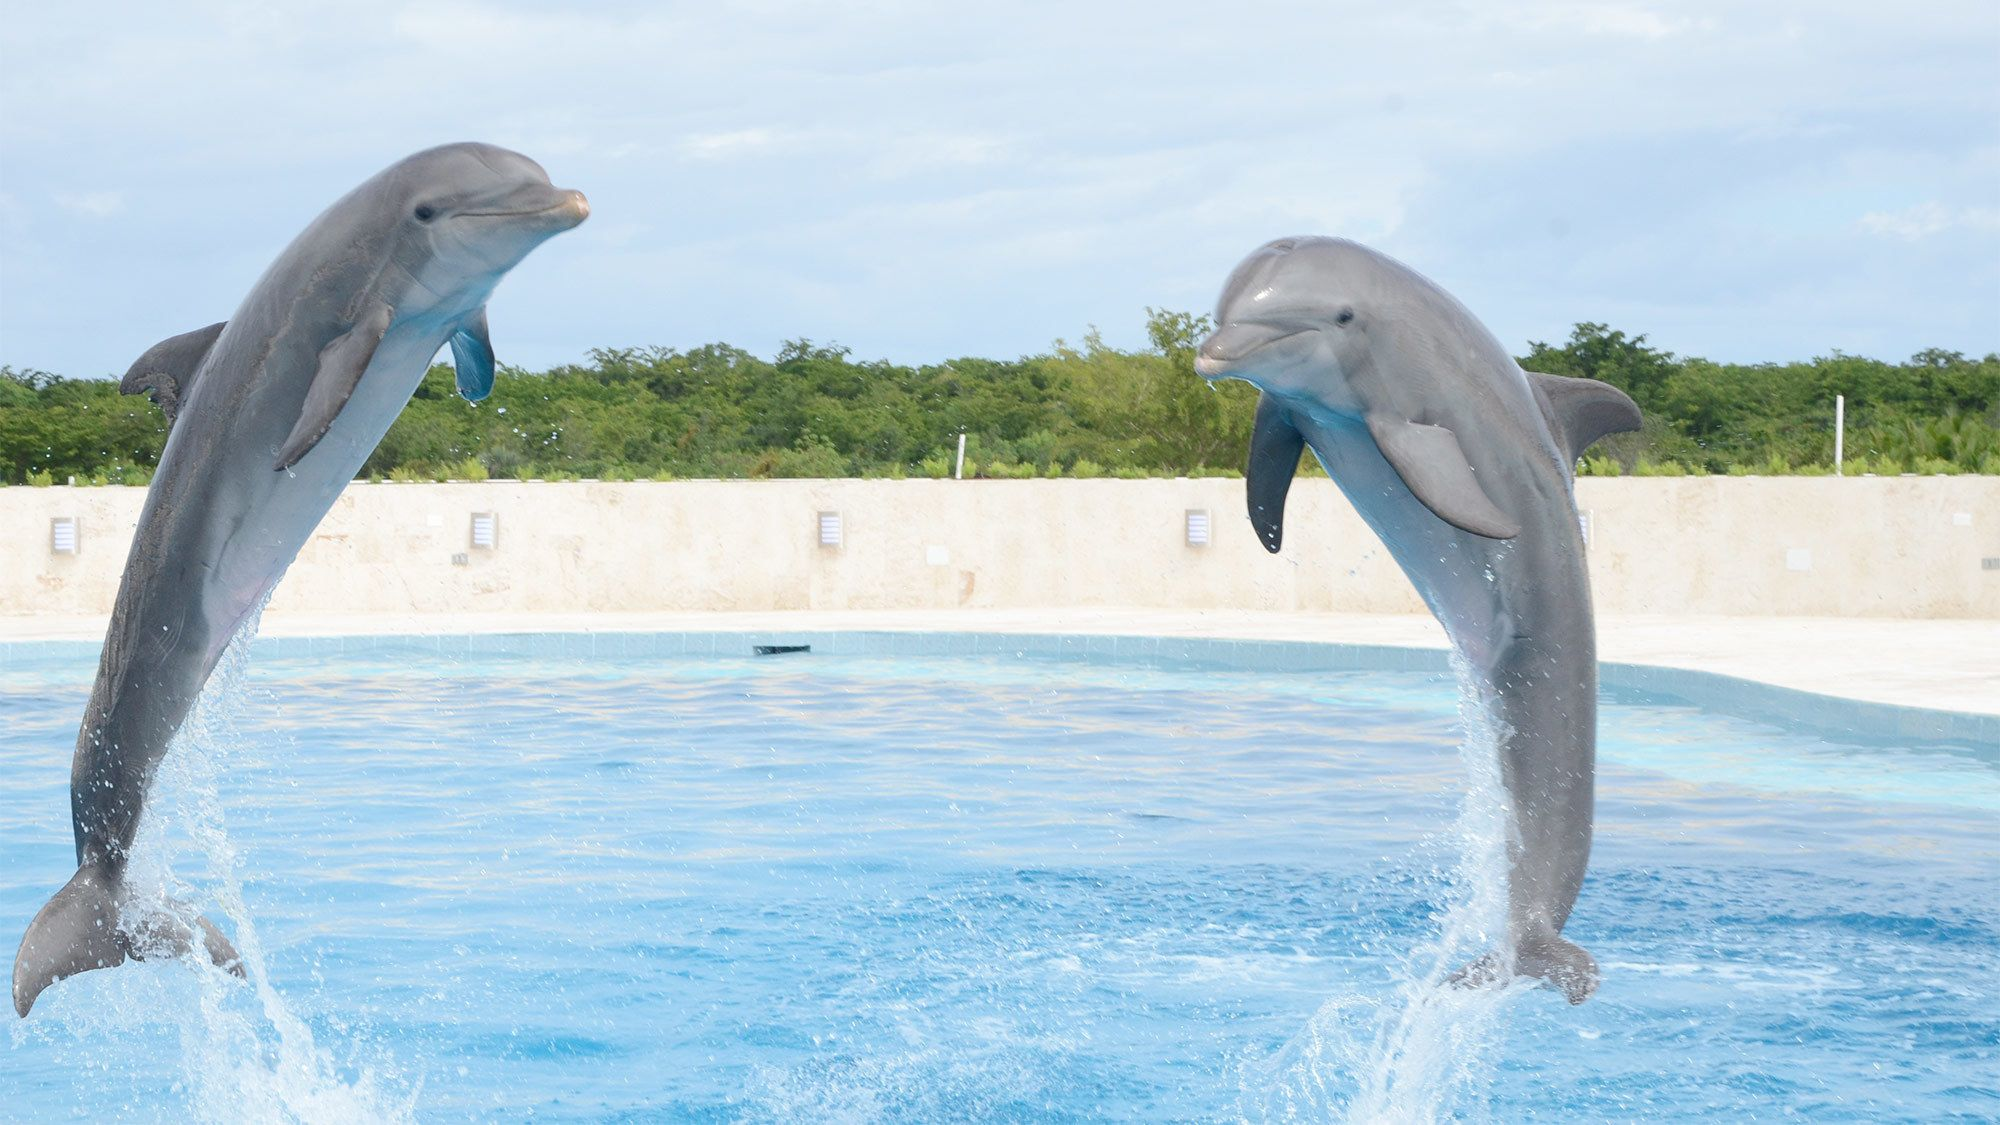 Two dolphins jumping out of the water in Punta Cana